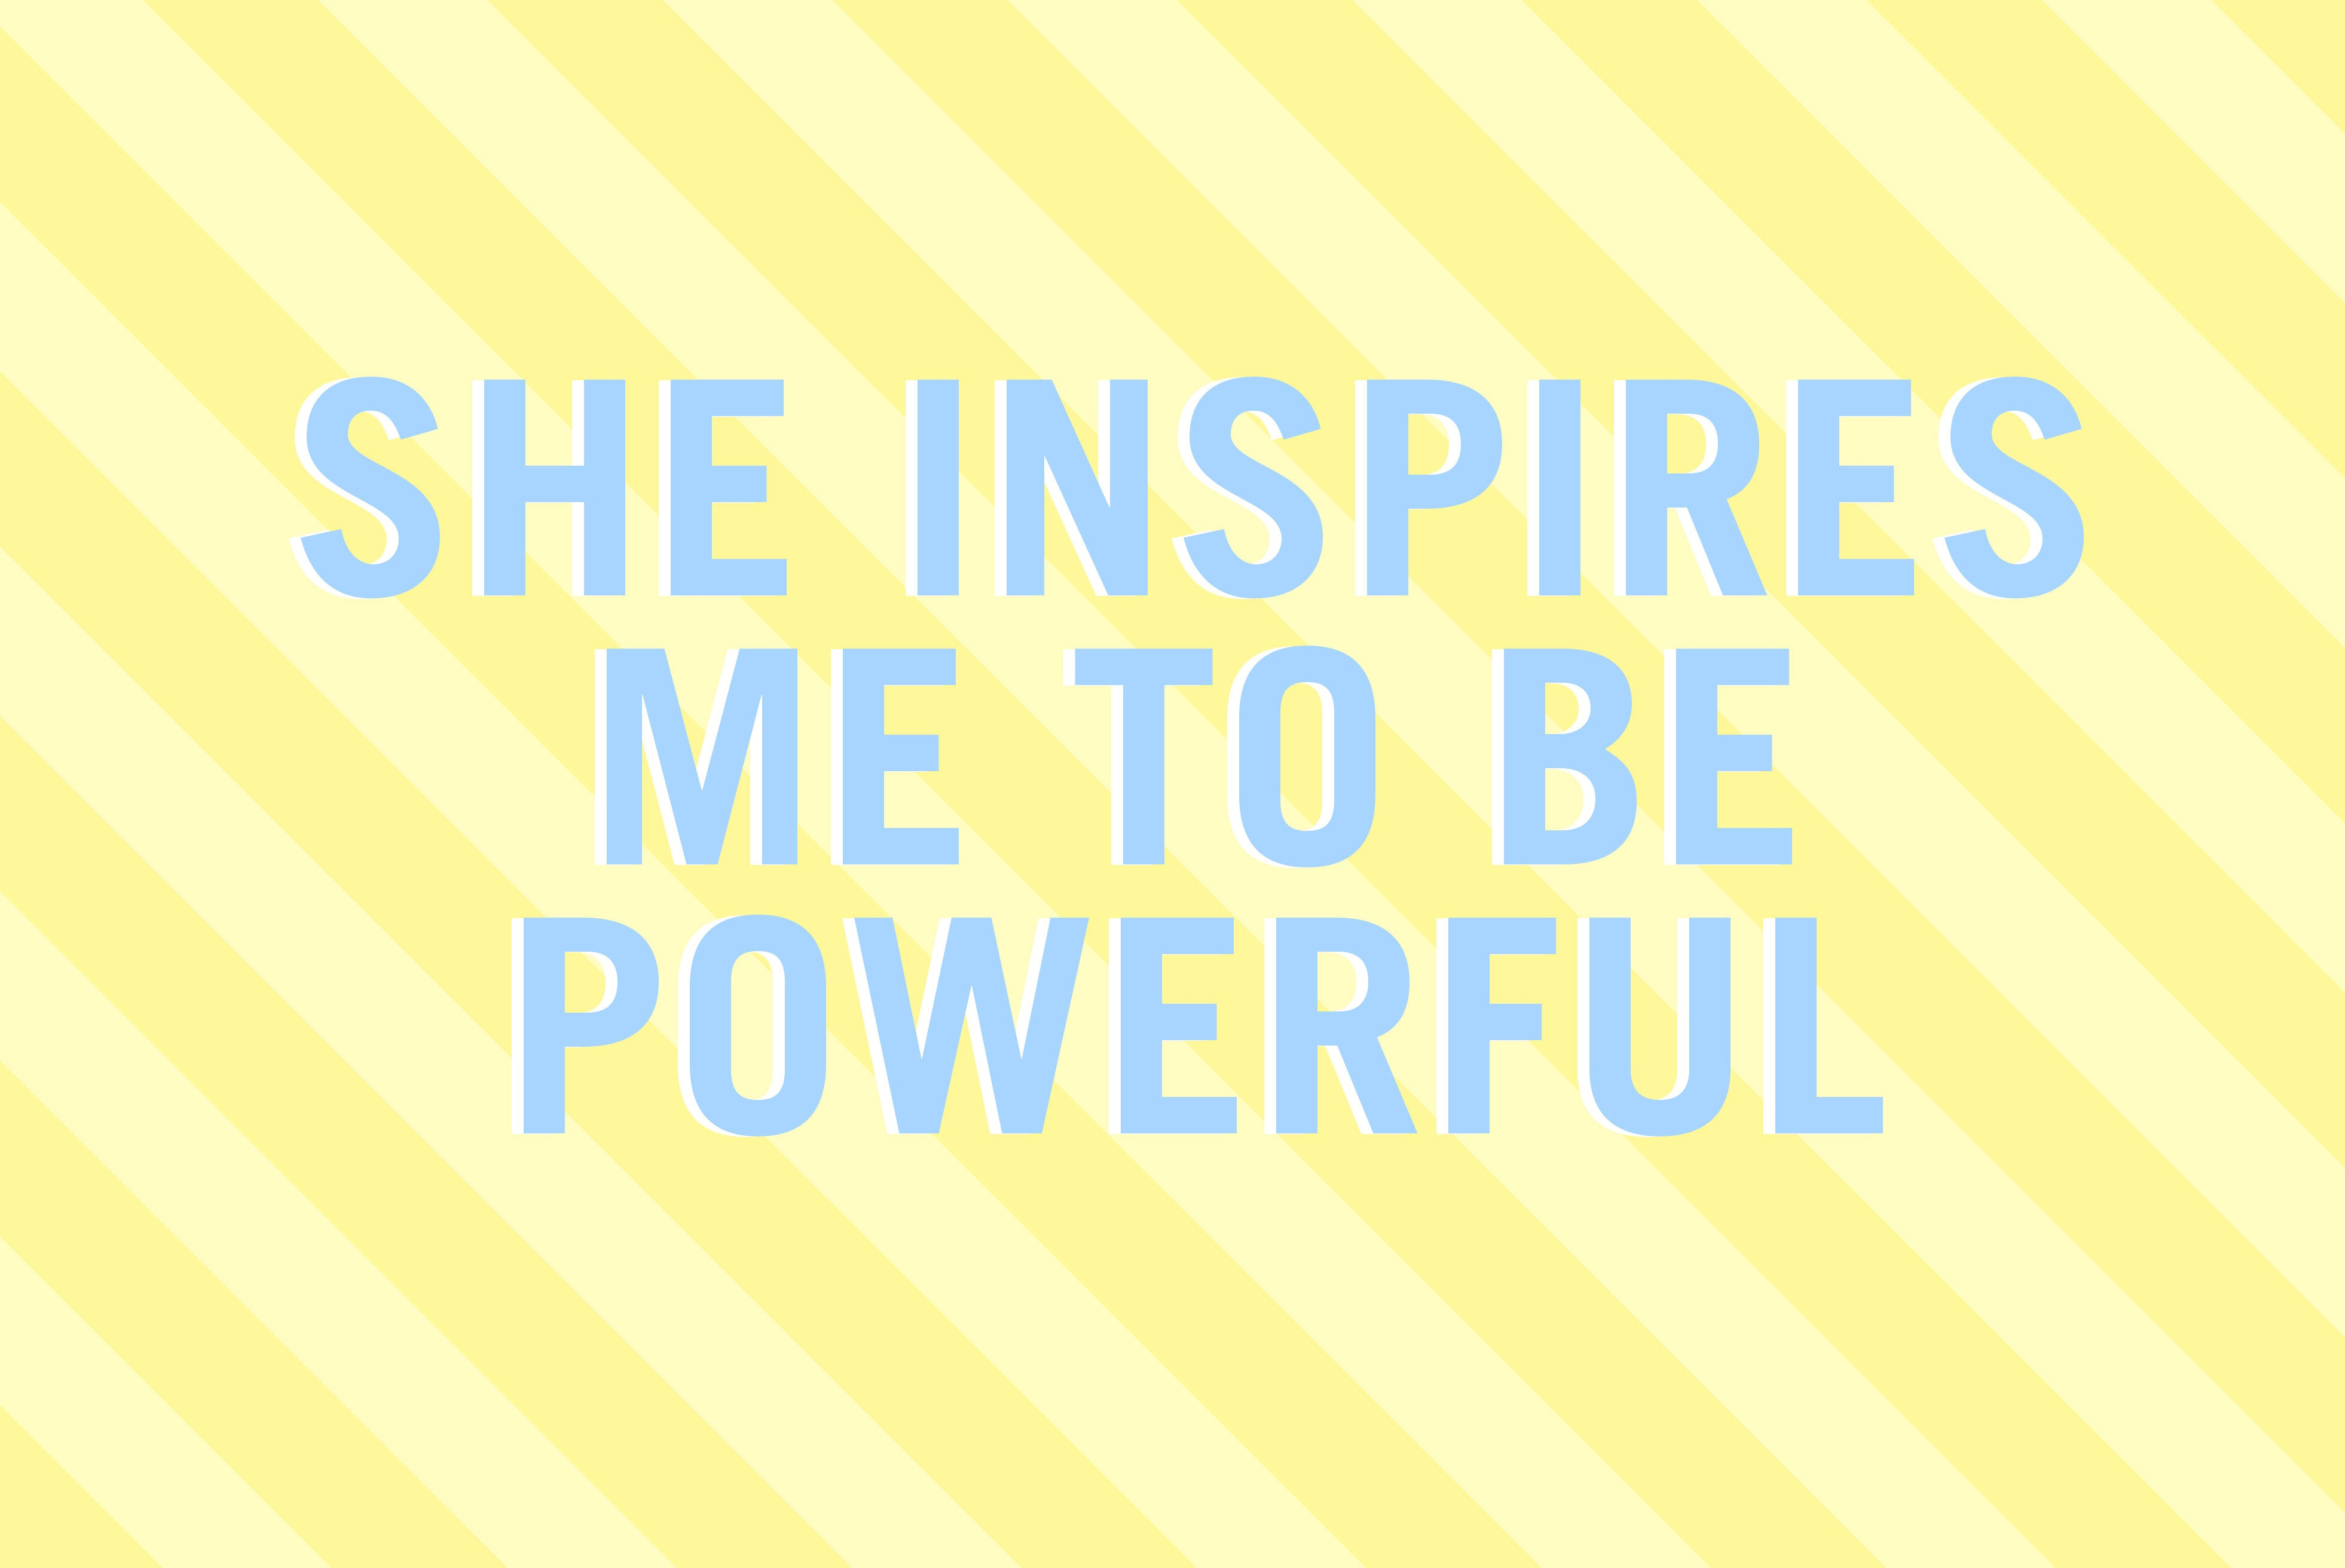 She inspires me to be powerful